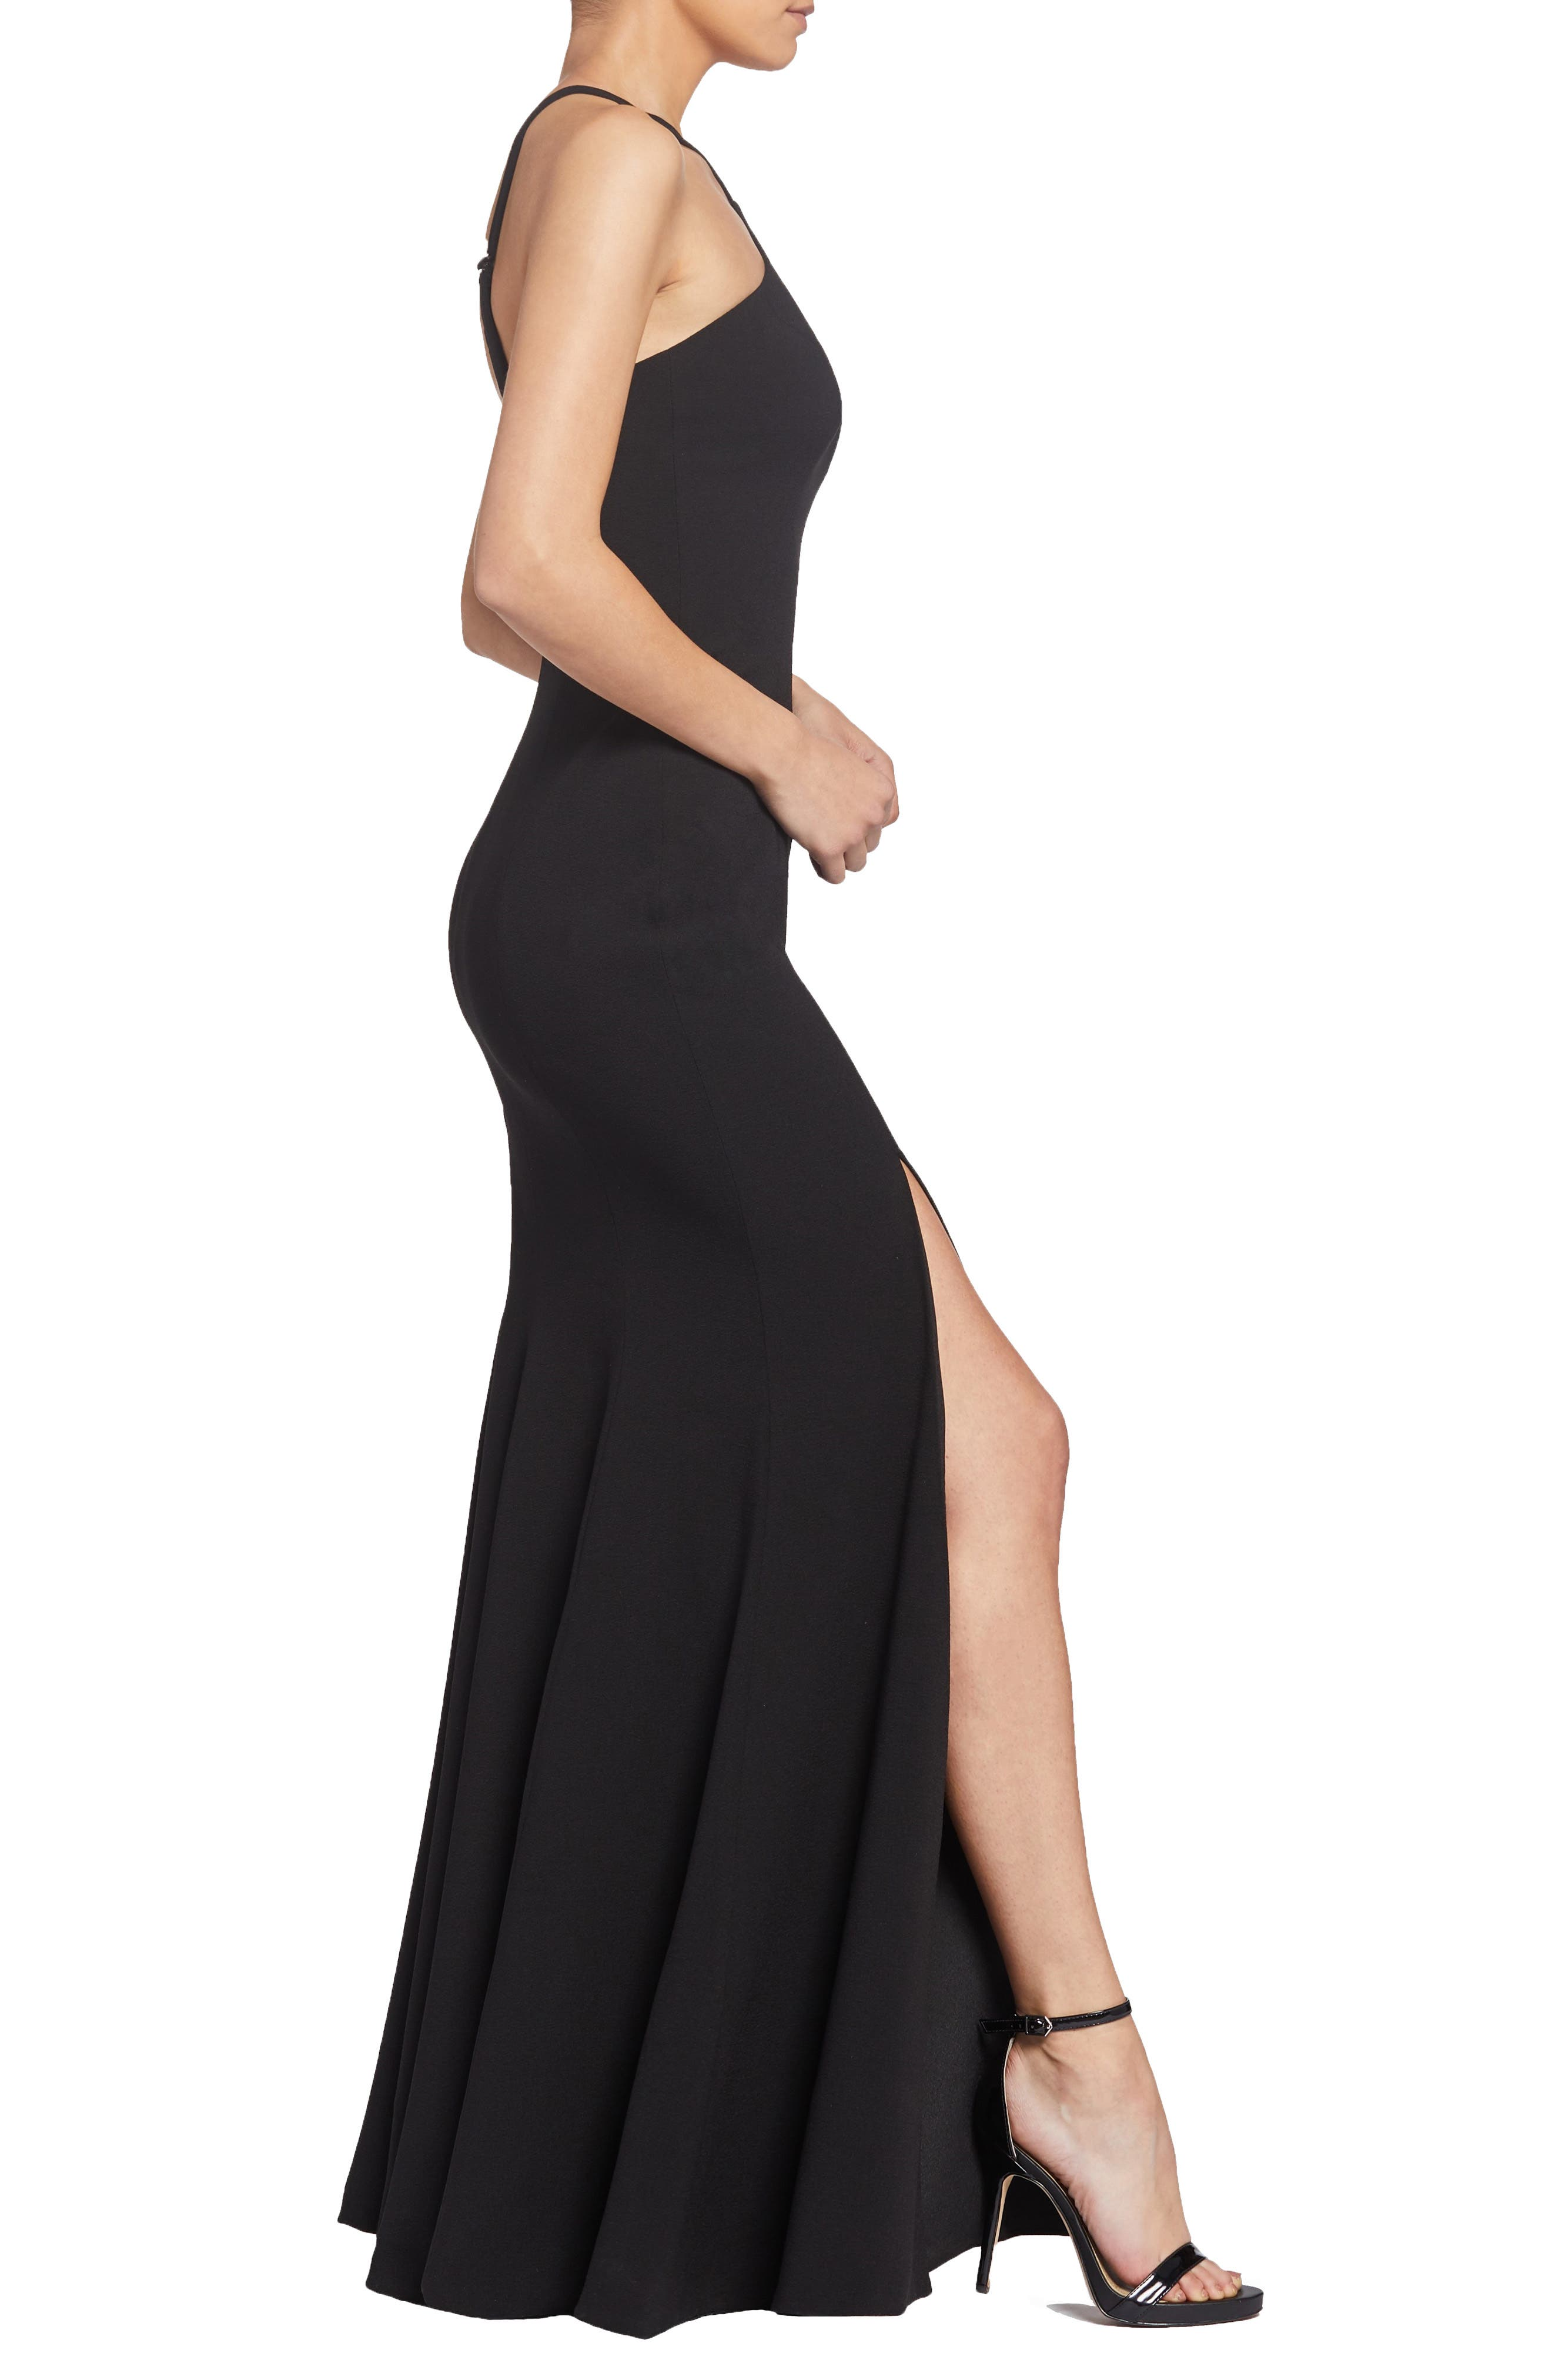 Brianna Halter Style Trumpet Gown,                             Alternate thumbnail 3, color,                             BLACK